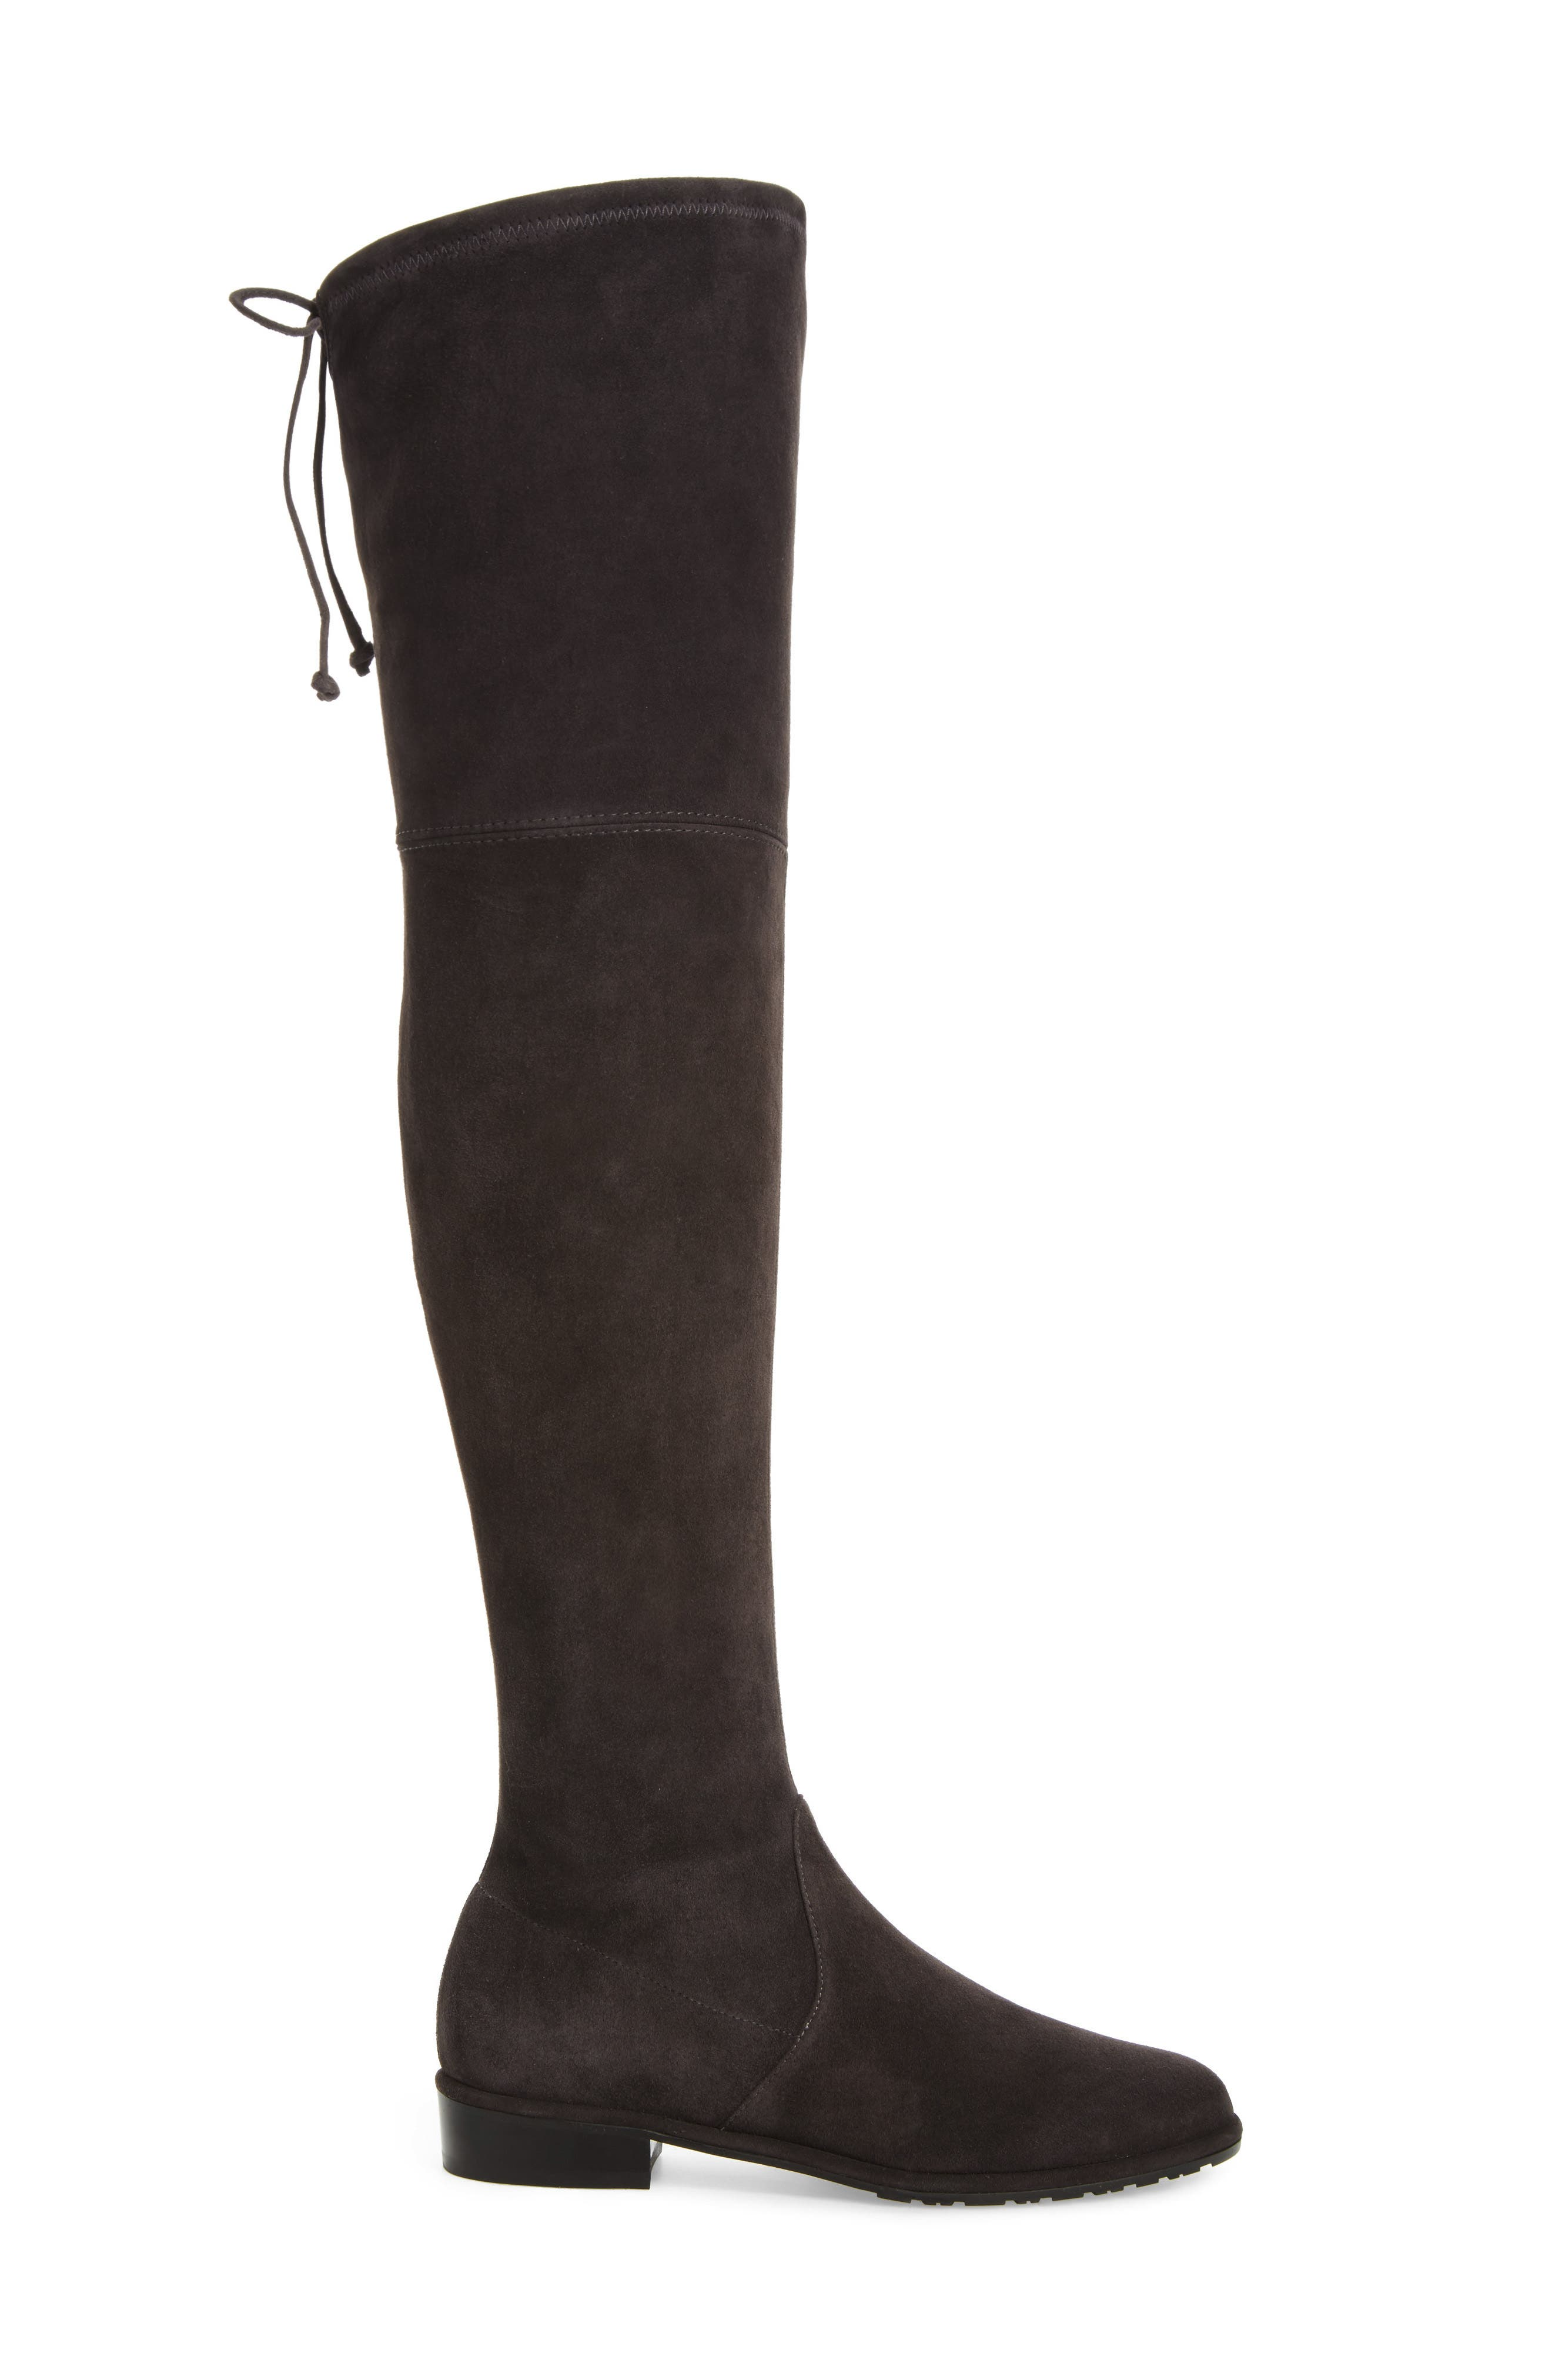 'Lowland' Over the Knee Boot,                             Alternate thumbnail 3, color,                             ASPHALT SUEDE